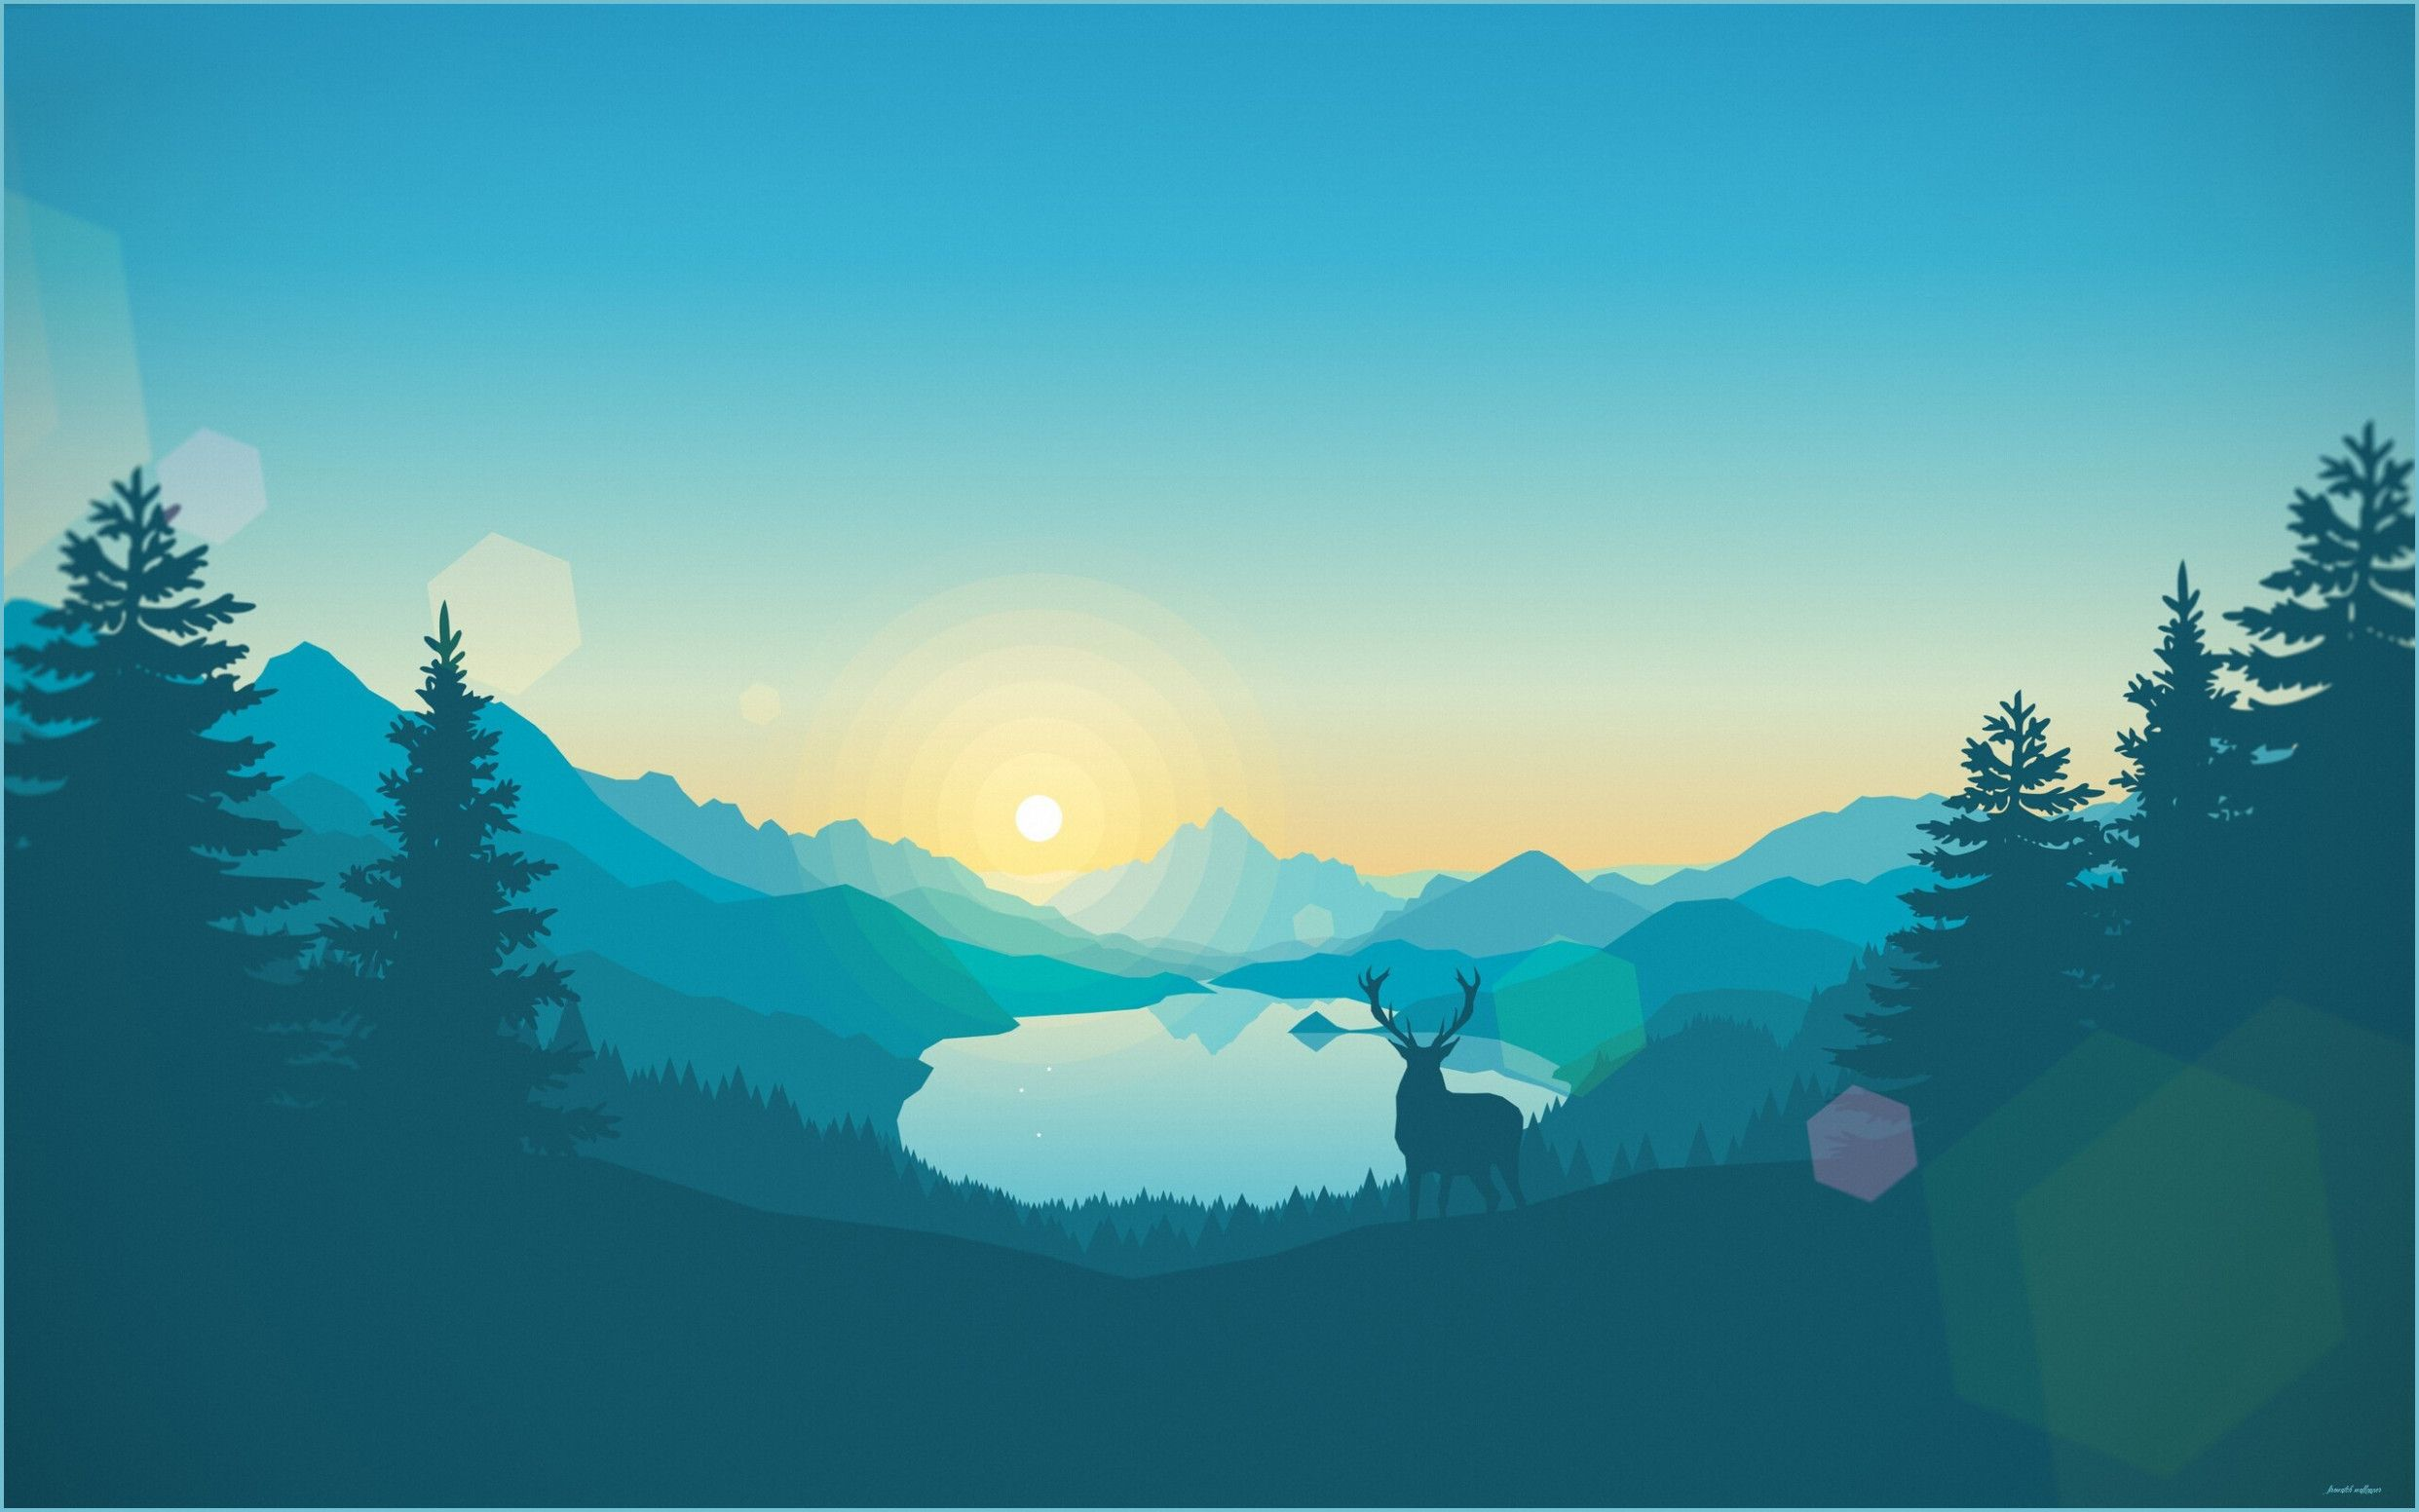 9K Resolution Wallpapers - Top Free 9K Resolution ...